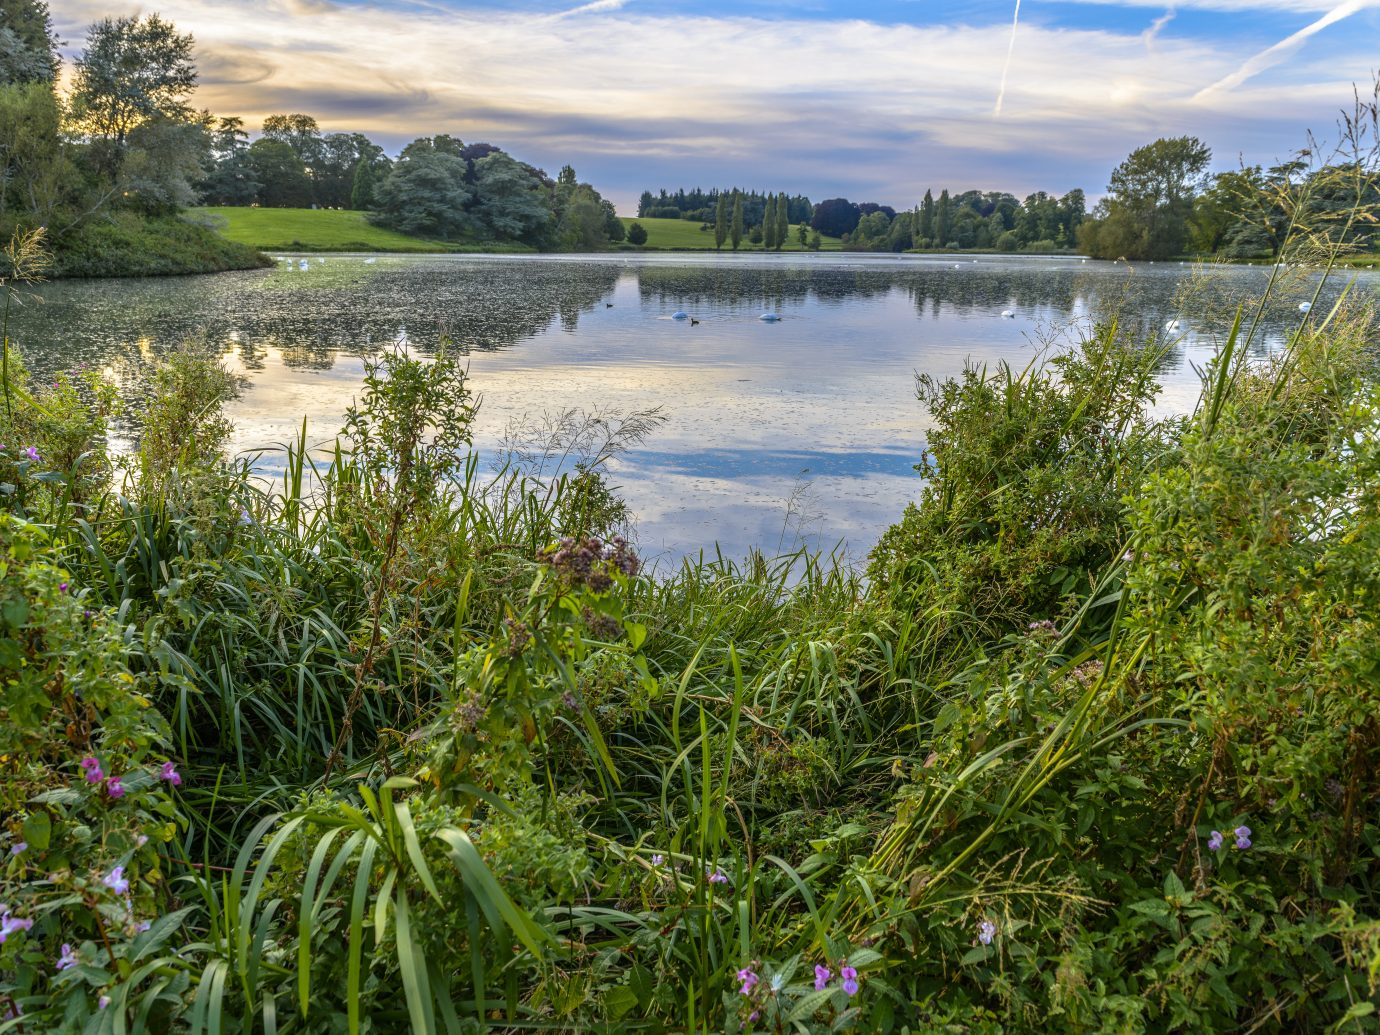 The lake in Blenheim Palace